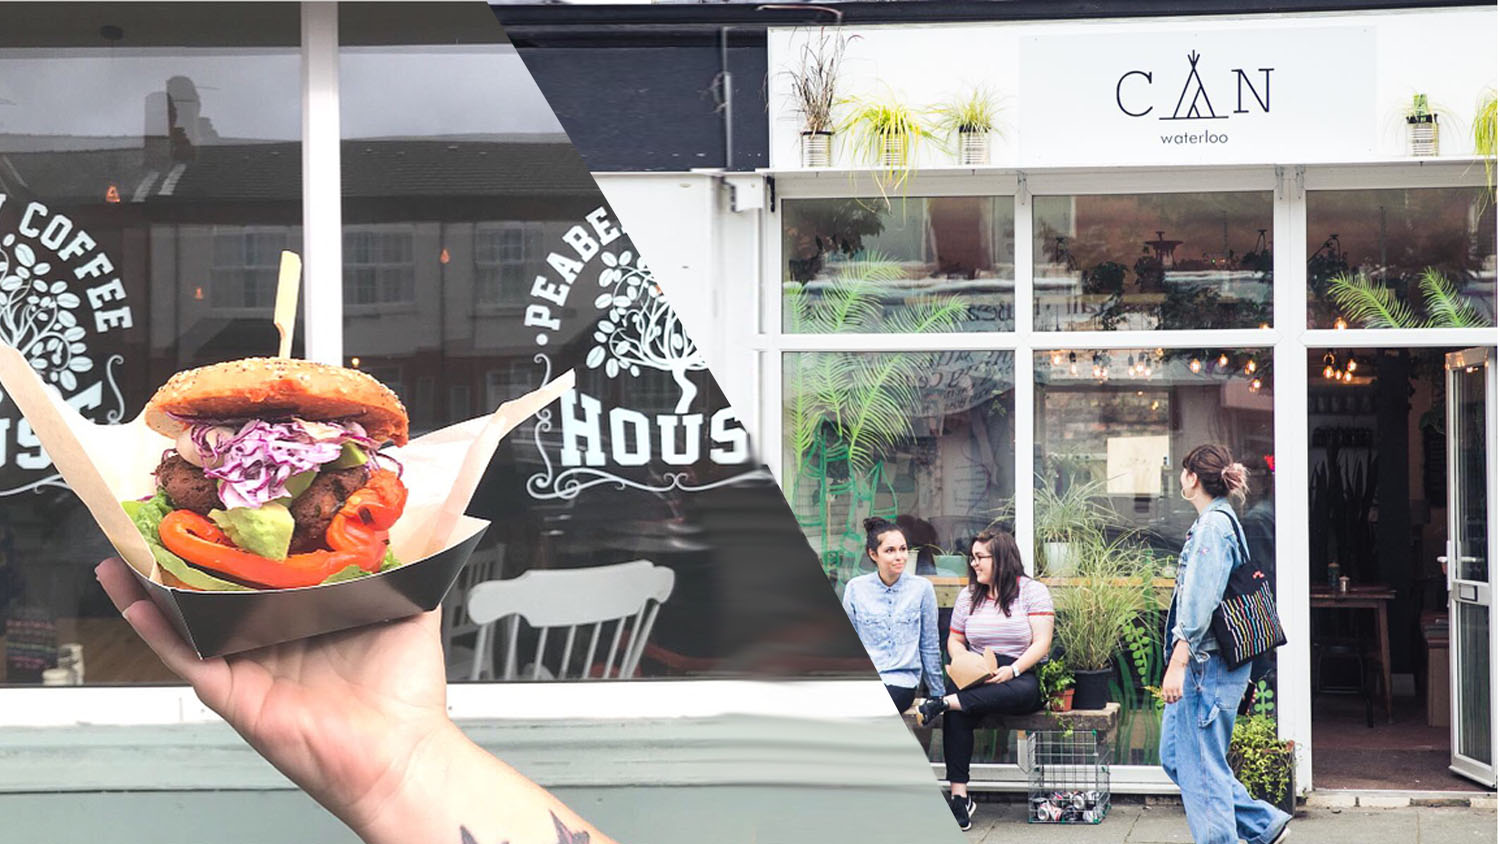 Vegan and Plastic-Free Café CAN Waterloo Opens in Liverpool